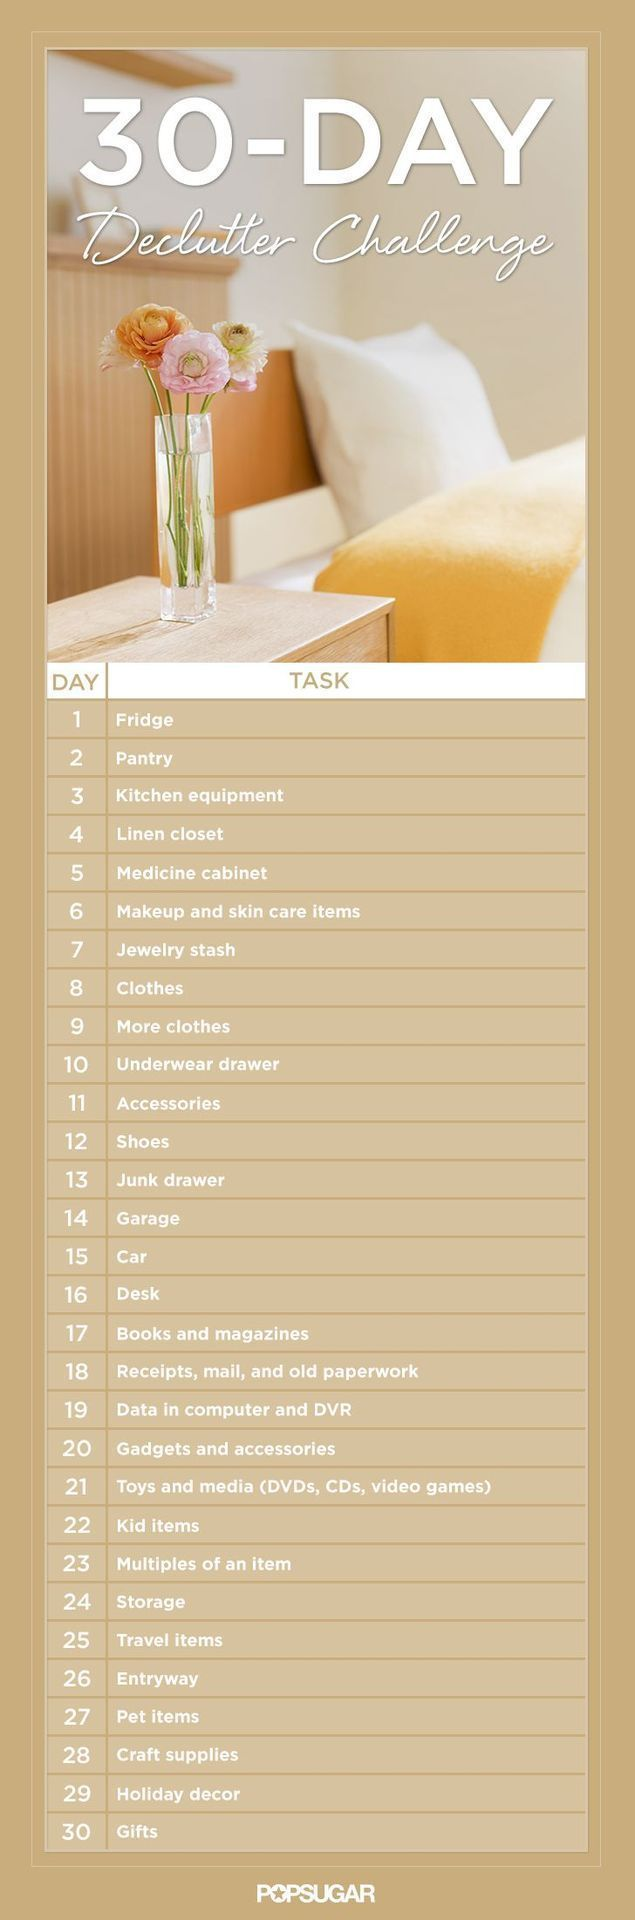 30 day spring cleaning checklist